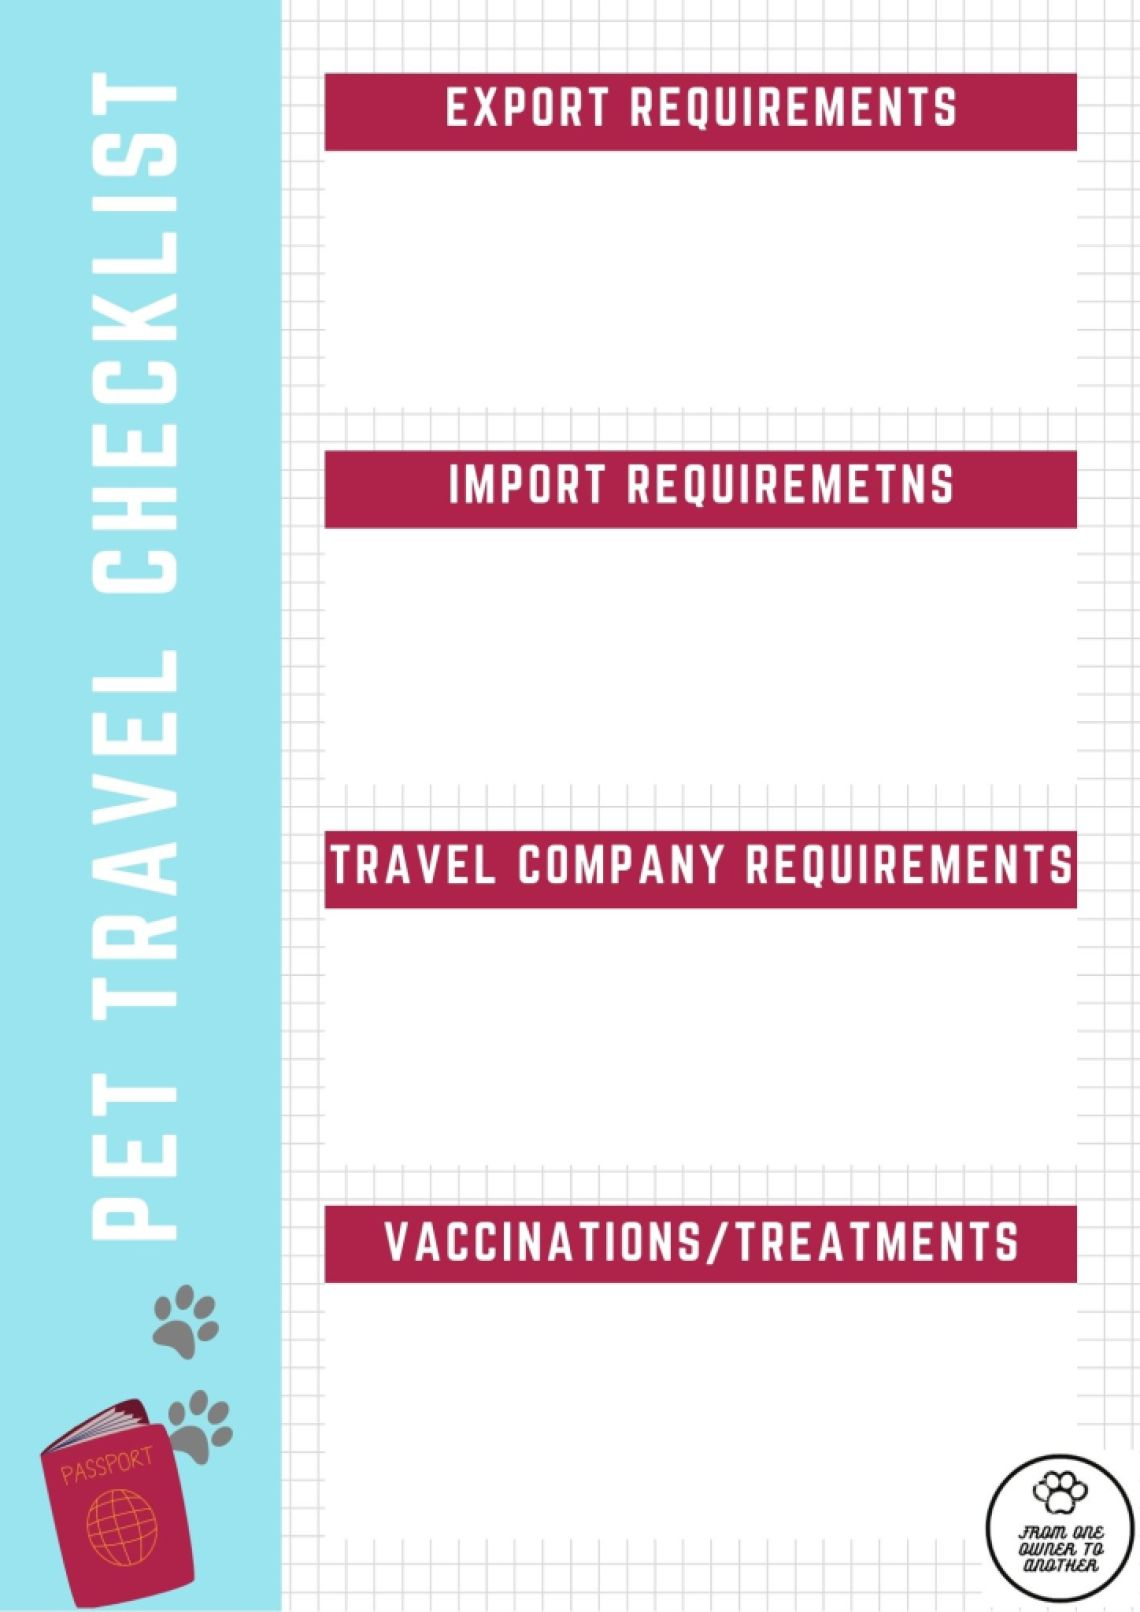 General pet travel checklist - add requirements related to your trip